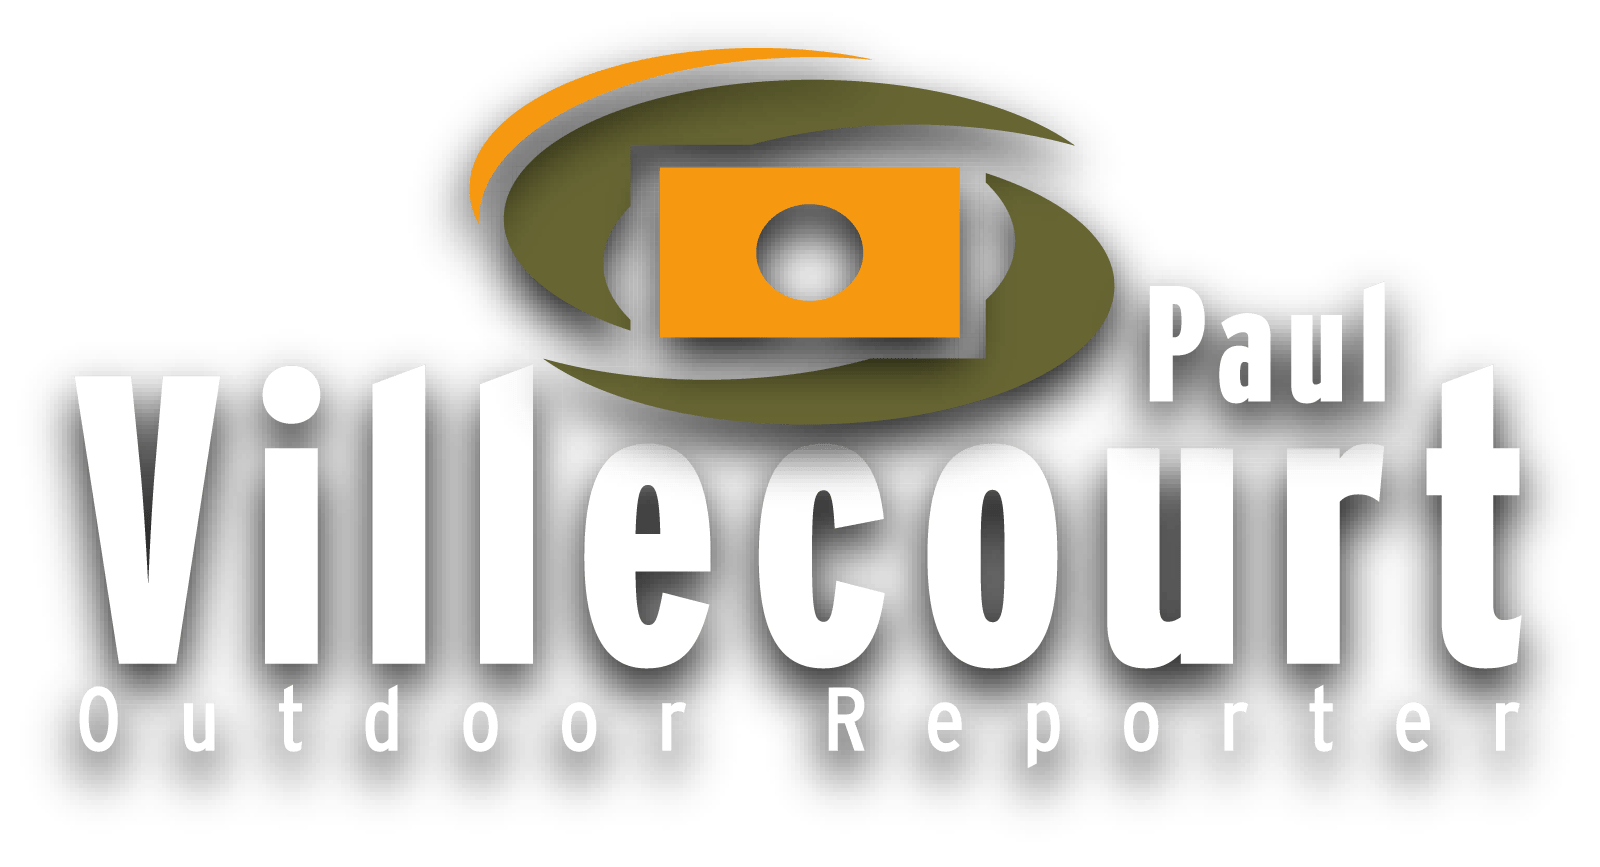 Paul Villecourt – Outdoor Reporter